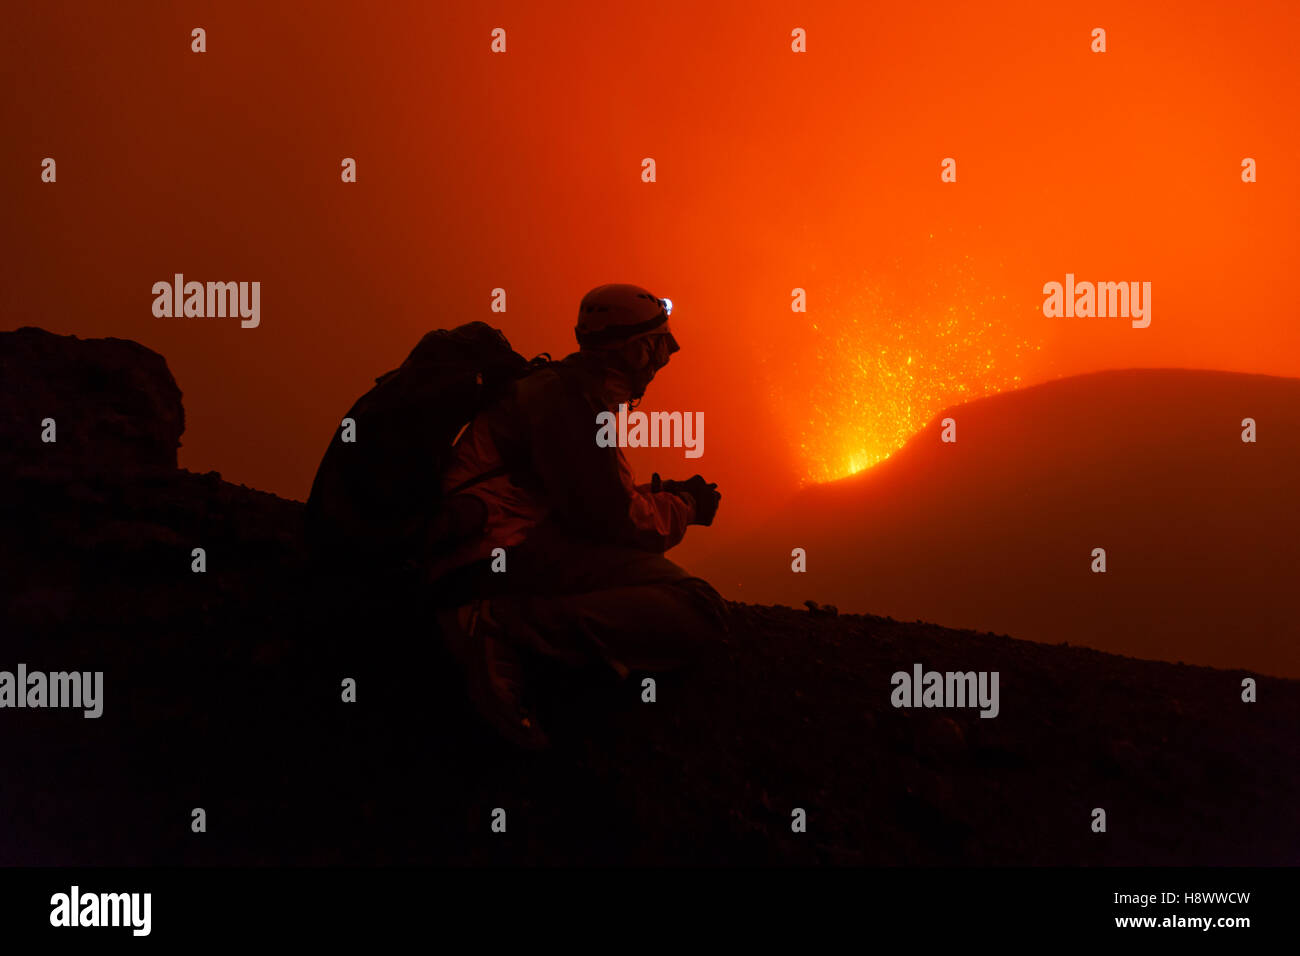 Volcanologist on Piton de la Fournaise in activity, Volcano eruption of May 2015, Reunion - Stock Image